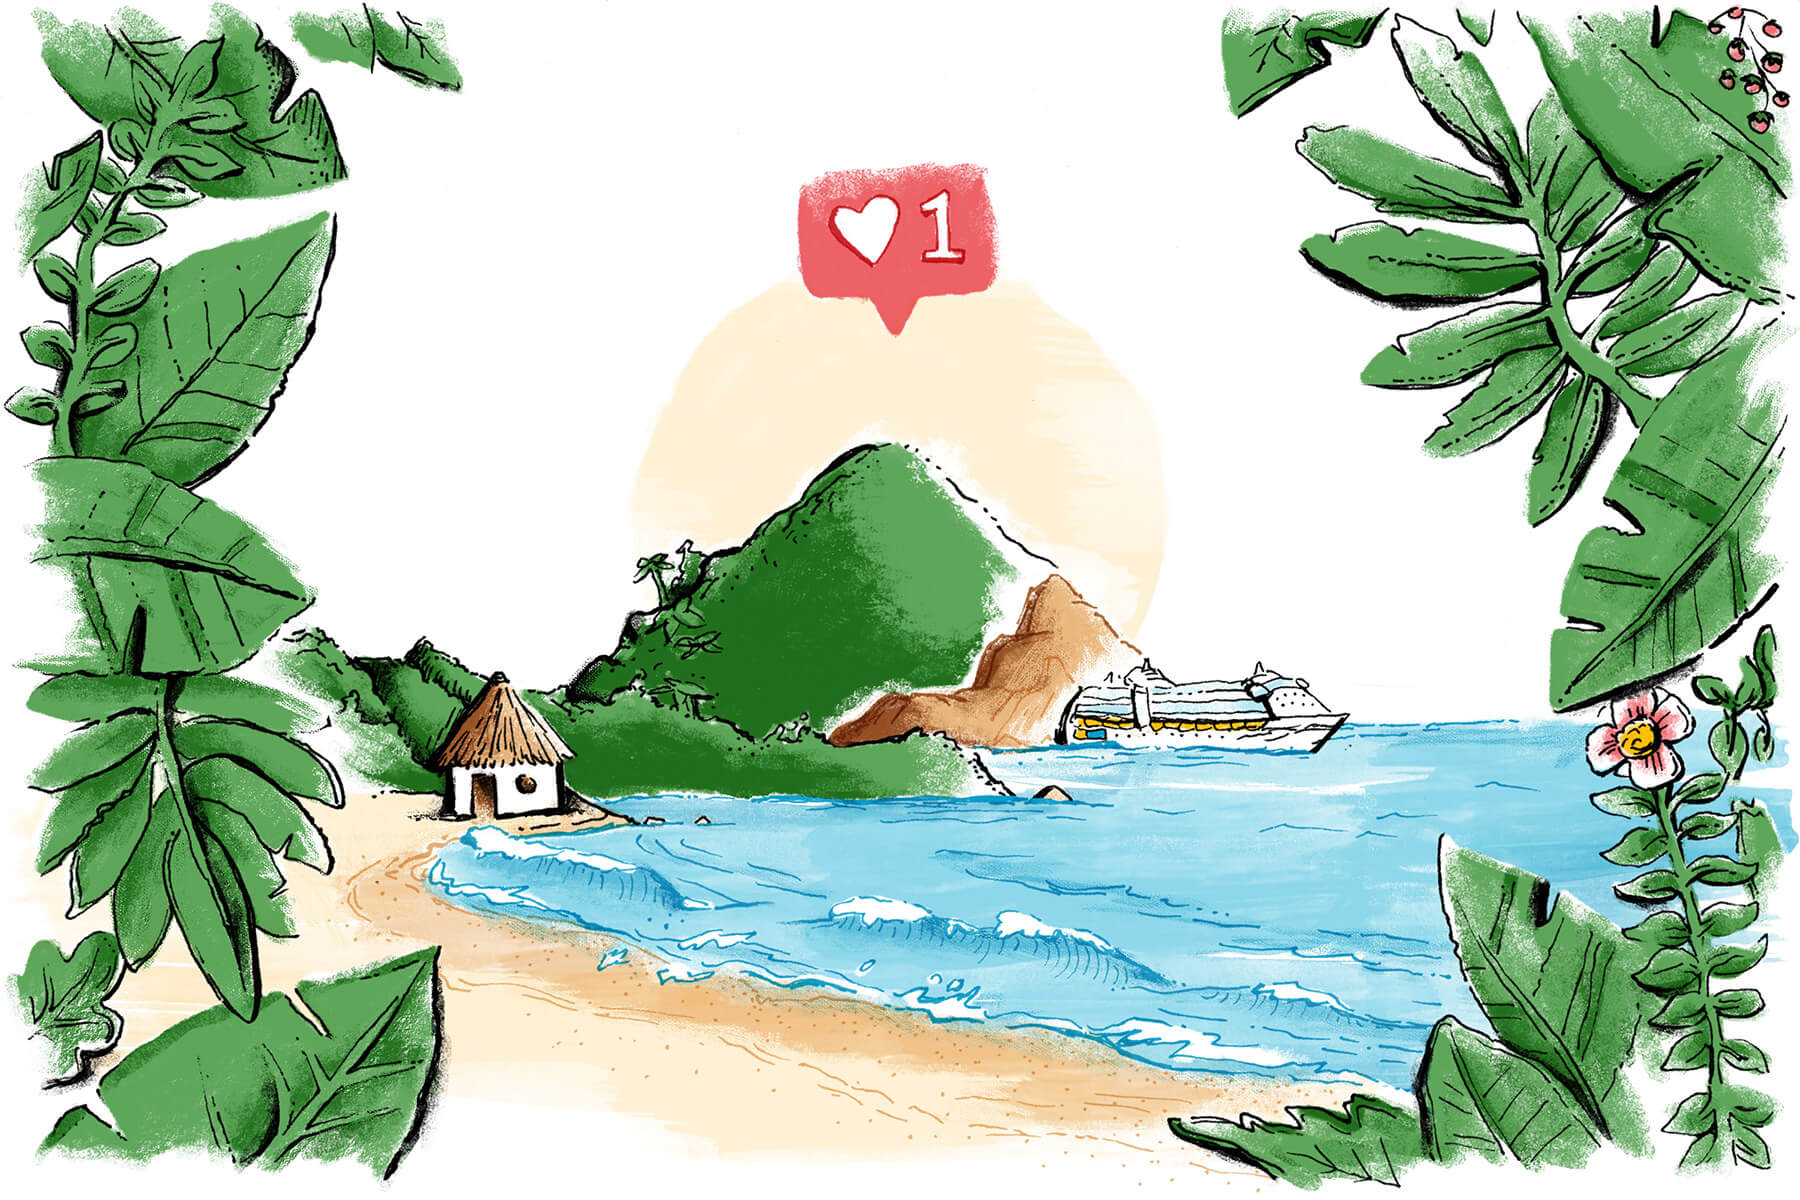 Textured water color illustration of tropical beach and mountain with an Instagram Like button above it in the sky